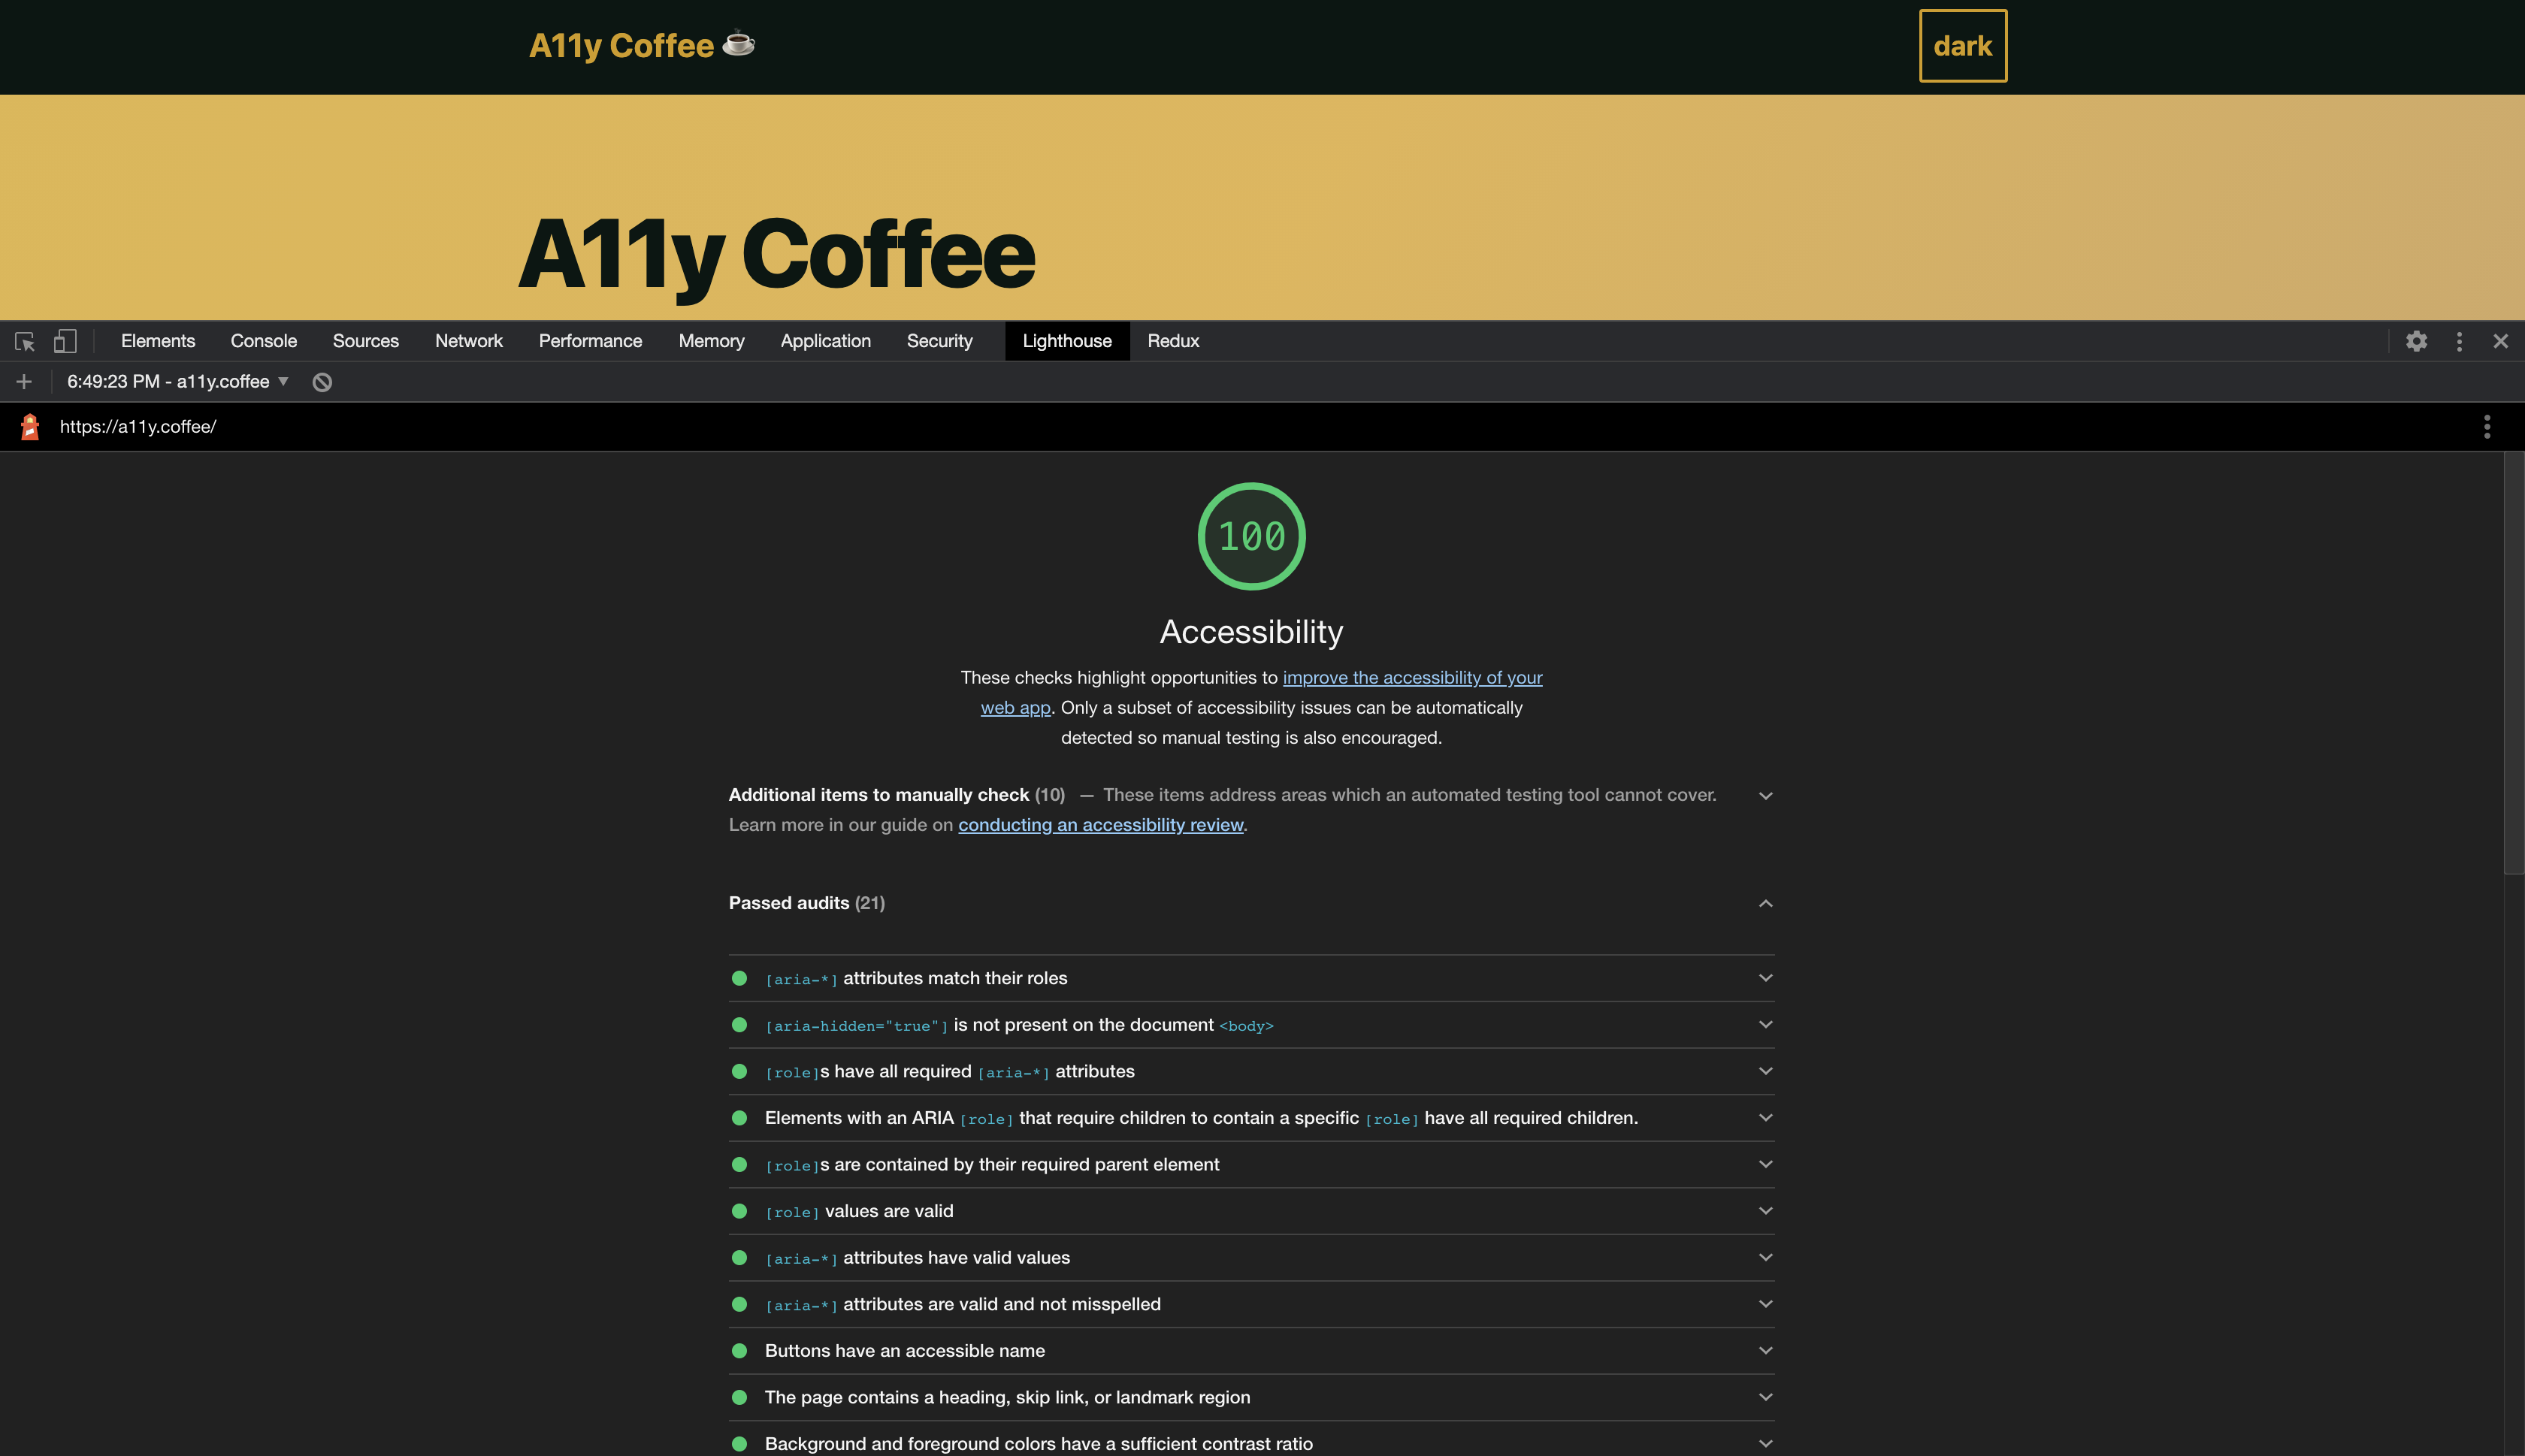 a11y.coffee's Lighthouse accessibility score of 100%